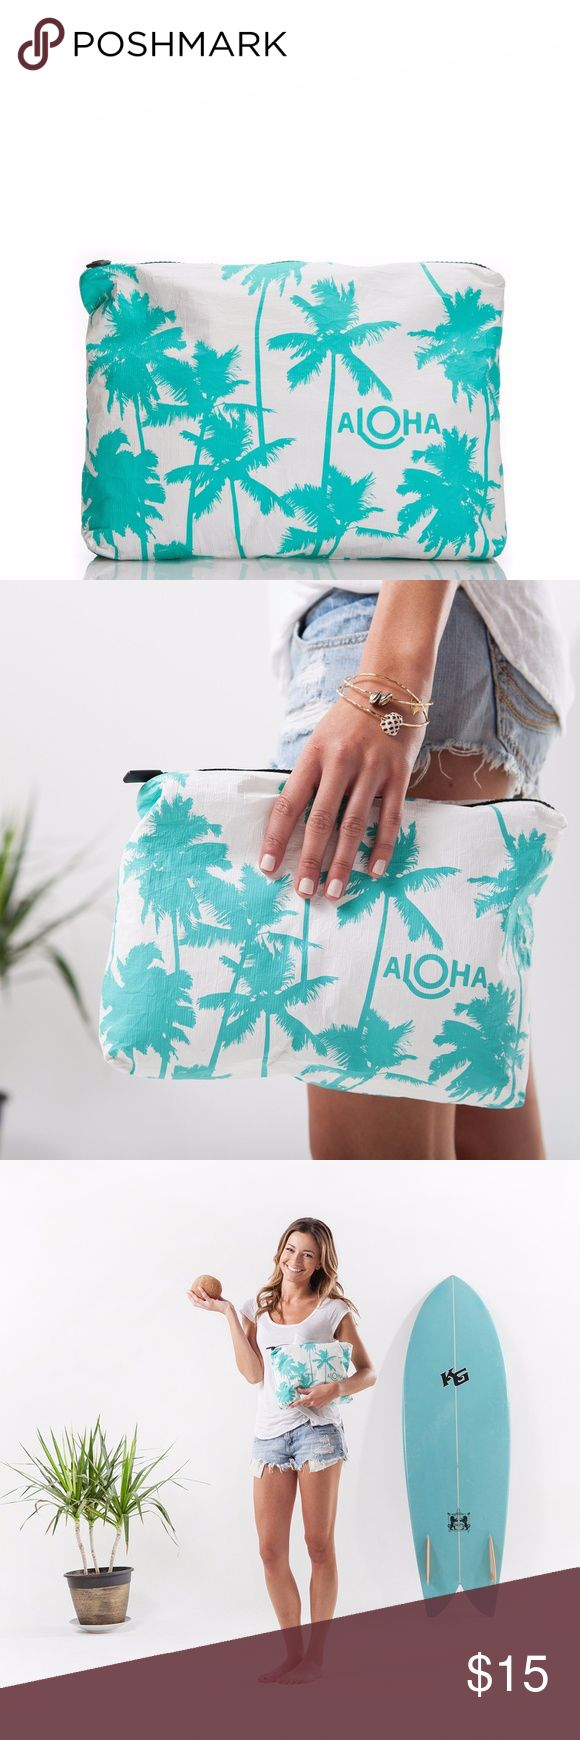 "Aloha Mid-Size Coco Palms Pouch Clutch Ocean Print Take a little Kauai with you on your next adventure! This print was inspired by Kauai's coco palms and the famous Coco Palms Resort.   This pouch is perfect to use as a beach clutch.  Stow your sunscreen, sarong, and bikini, or pack toiletries for your next trip! This pouch is made from 100% coated Tyvek, so it is splash proof.   Mid-size pouch measures:  11.5"" across x 2"" wide x 8.5"" tall Aloha Collection Bags"